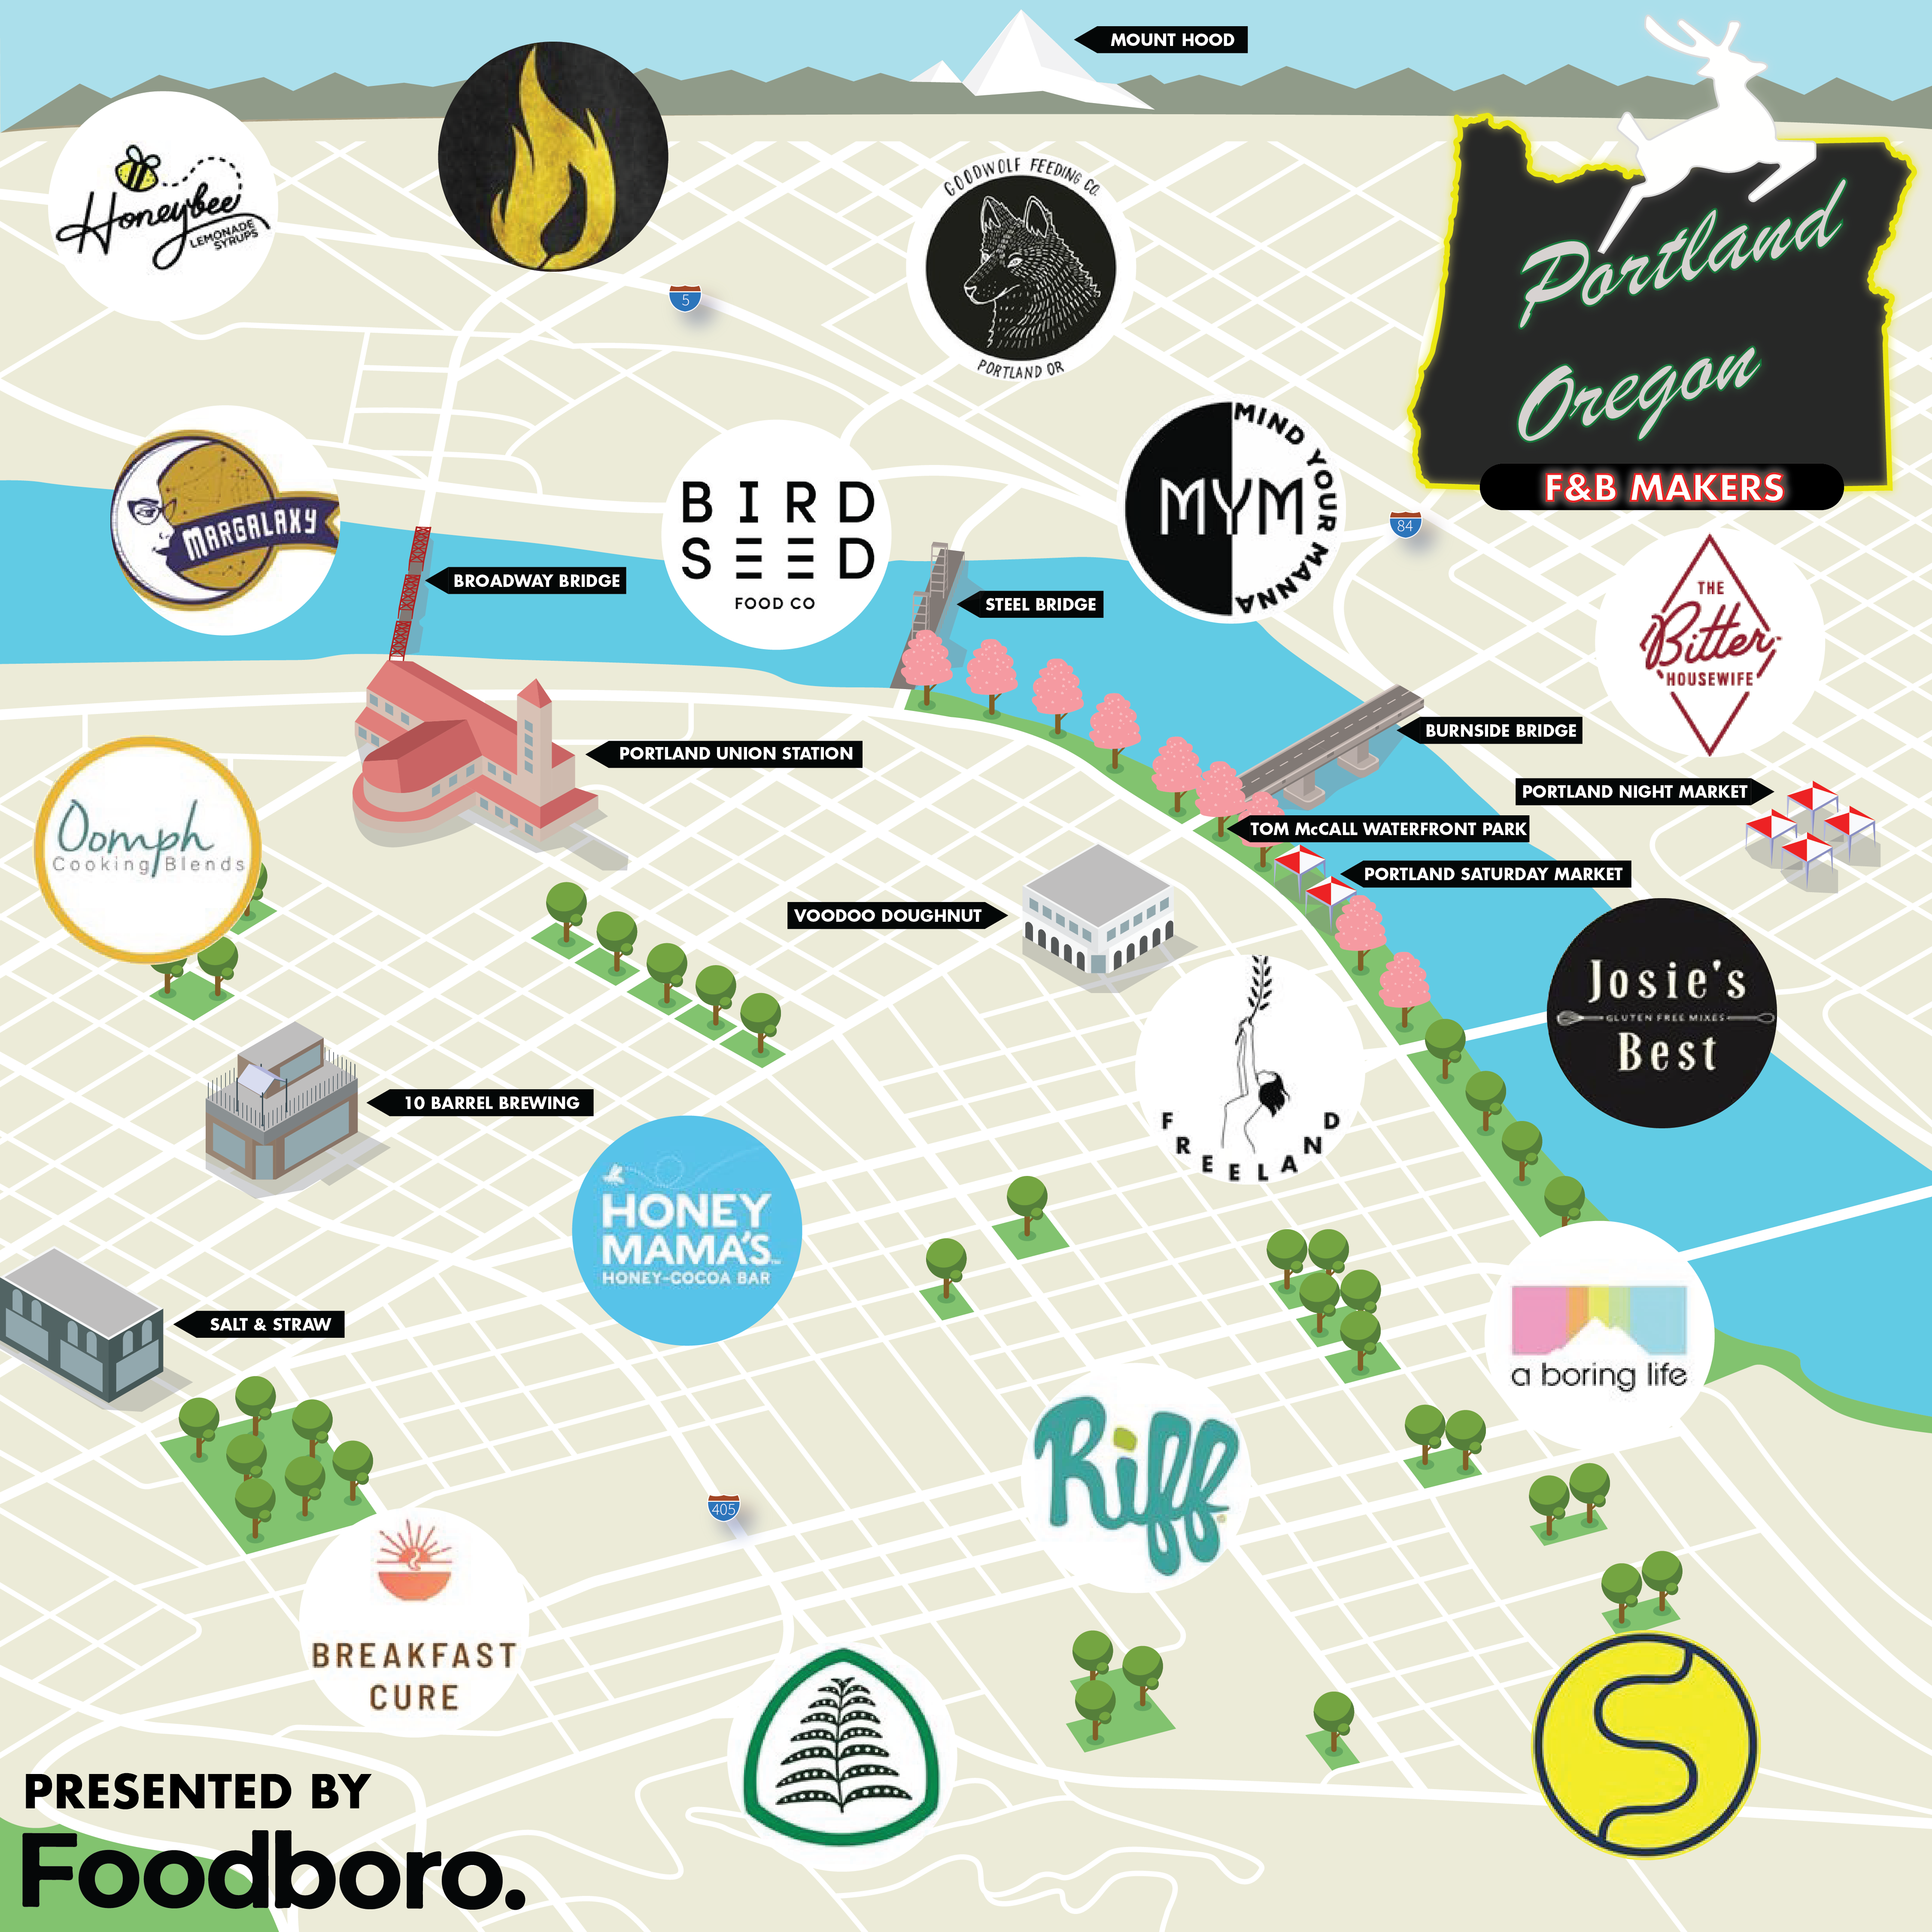 16 of Portland's Hottest Emerging Food and Beverage Companies